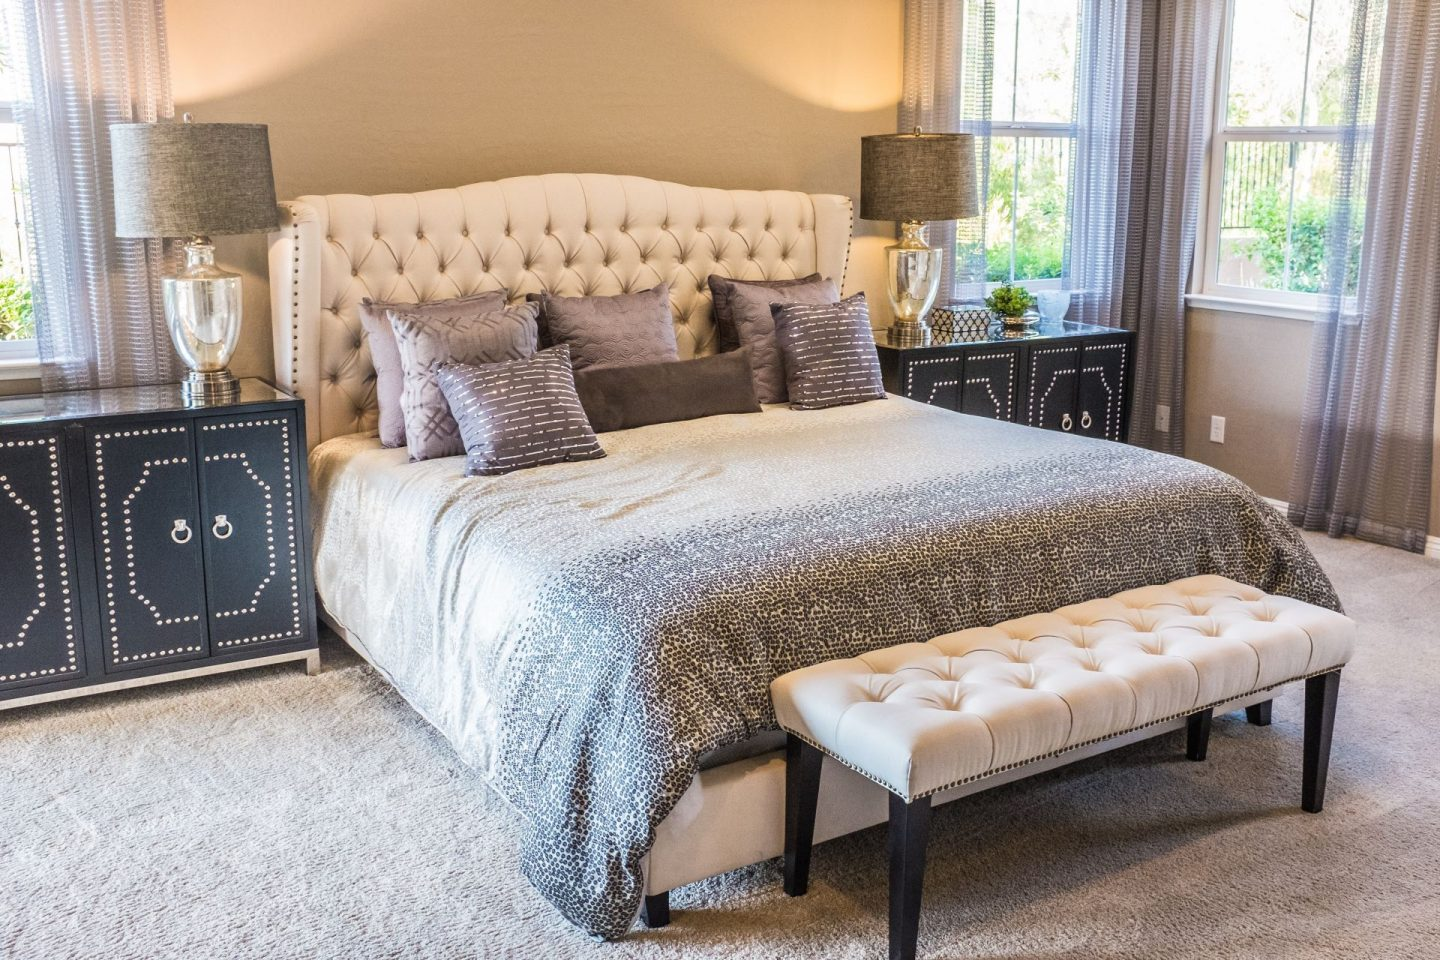 , 5 Tips for Creating a Luxury Bedroom on a Budget